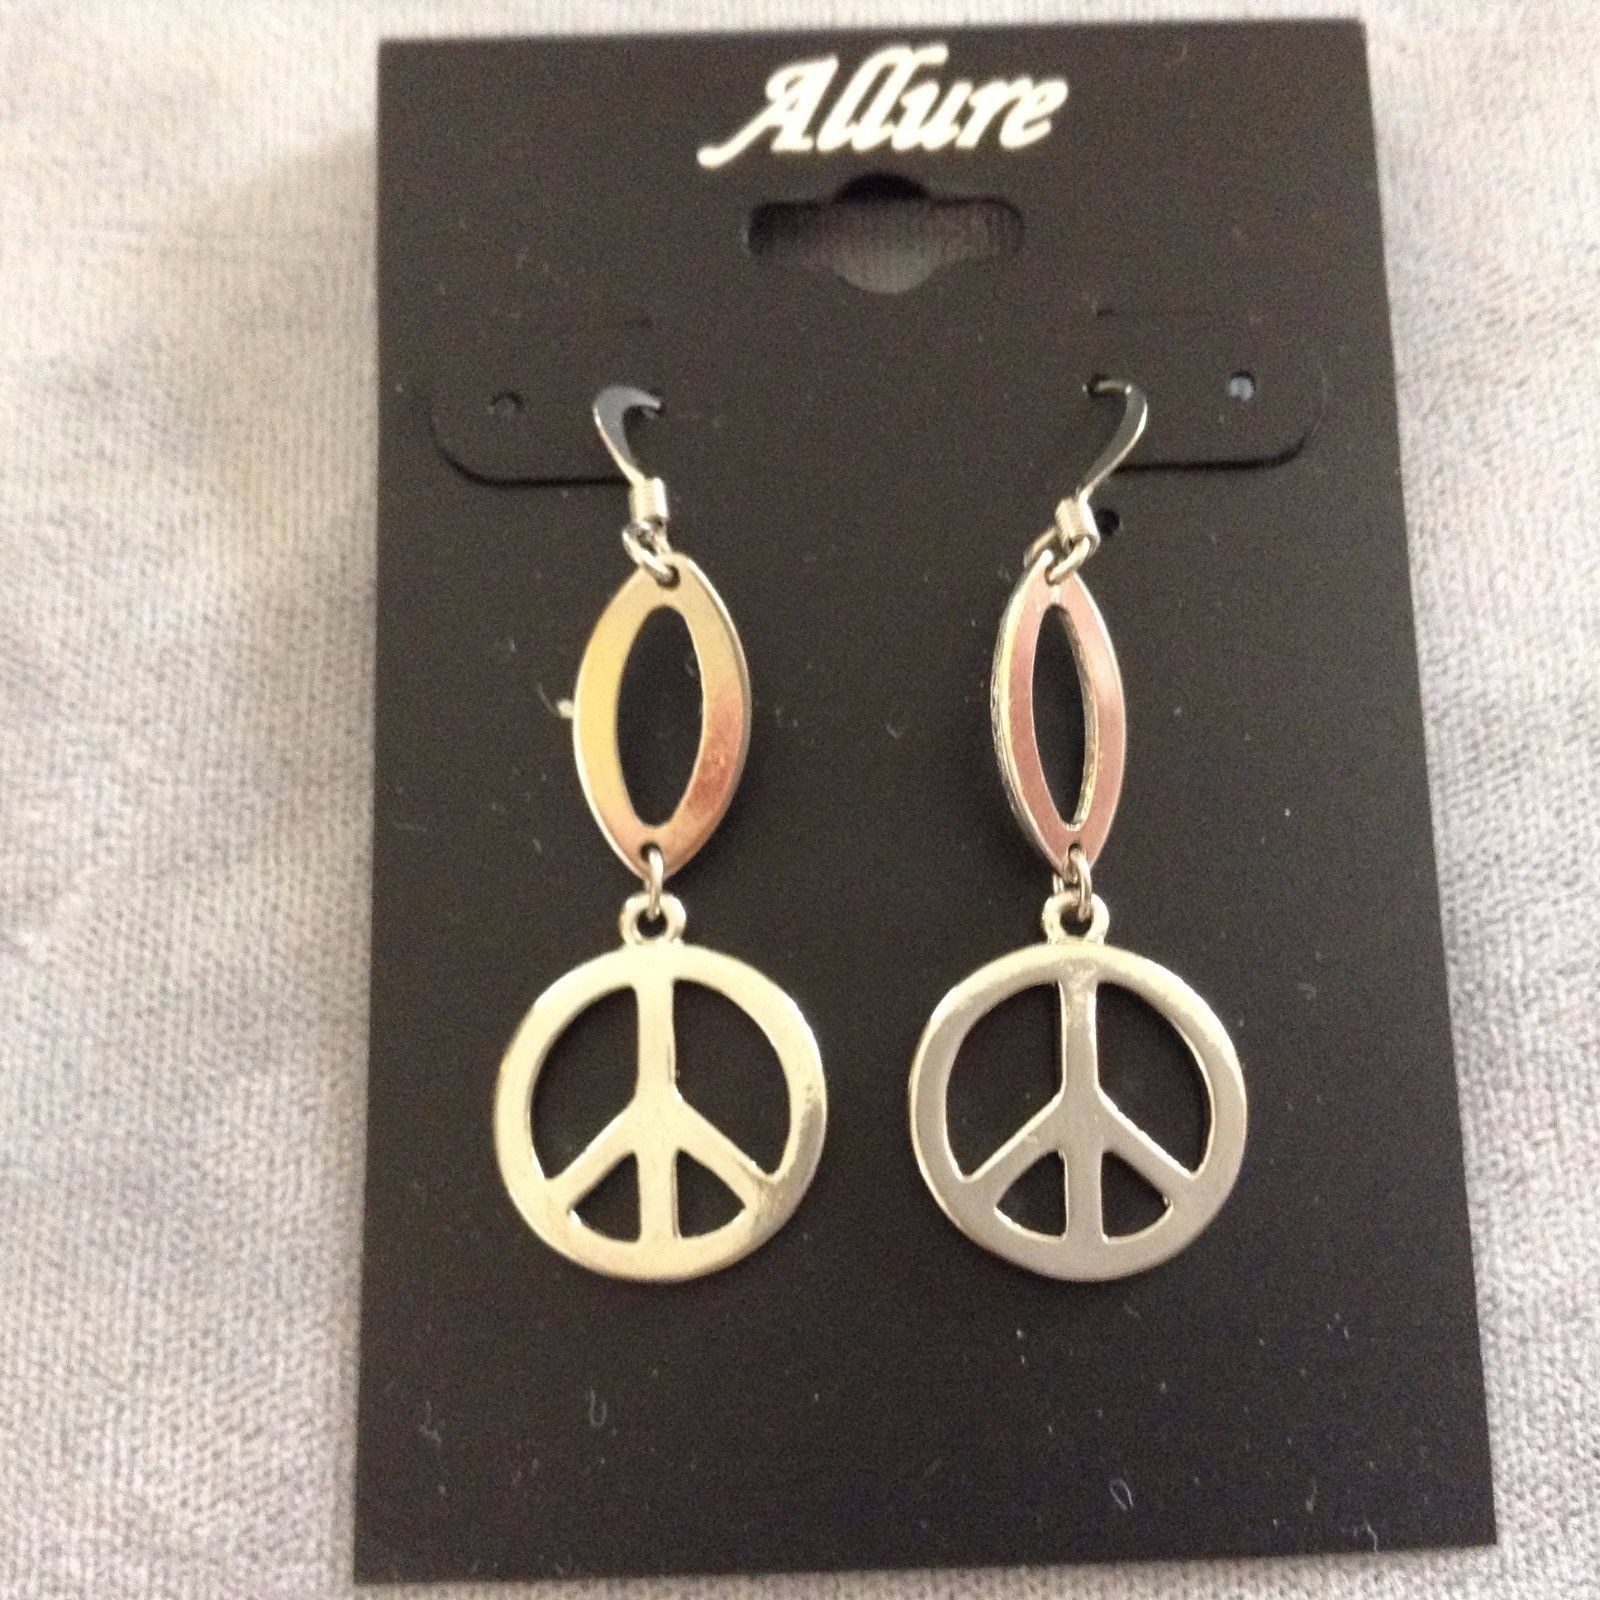 New Allure Earrings Peace Sign Silver Toned Hanging